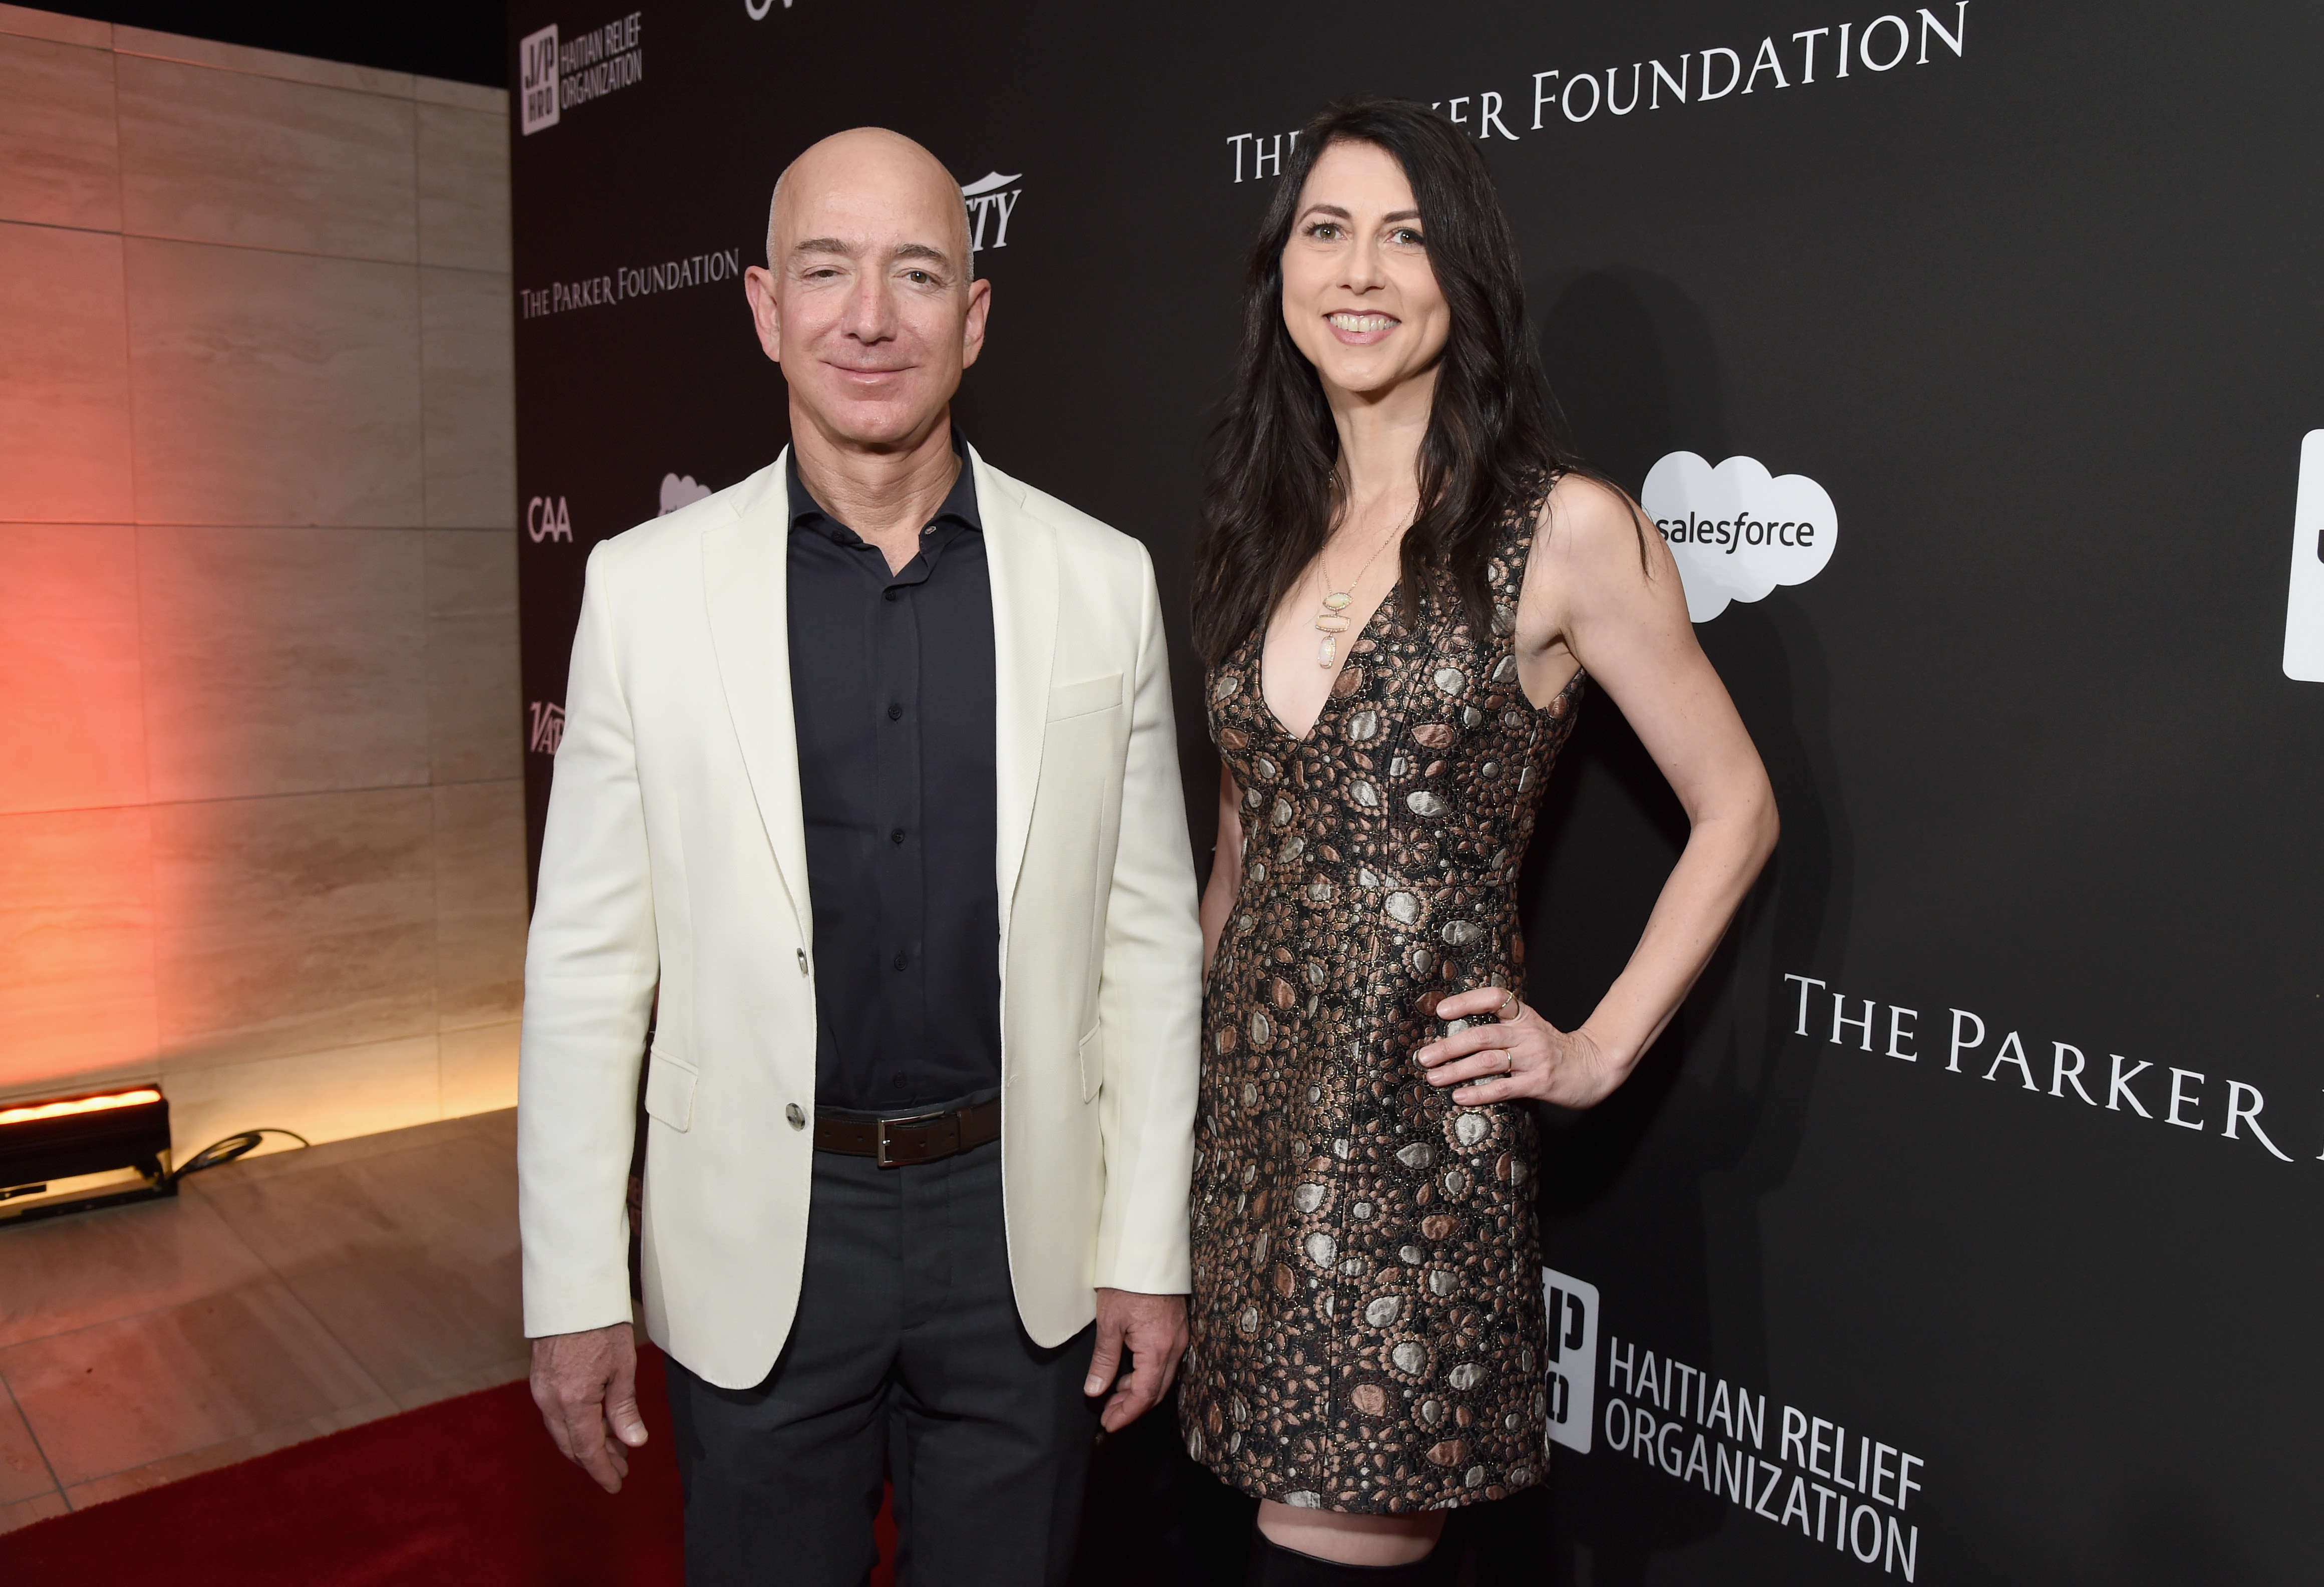 Chief Executive Officer of Amazon Jeff Bezos (L) and MacKenzie Bezos attend the 7th Annual Sean Penn & Friends HAITI RISING Gala benefiting J/P Haitian Relief Organization on January 6, 2018 in Hollywood, California. (Photo by Michael Kovac/Getty Images for for J/P HRO Gala)